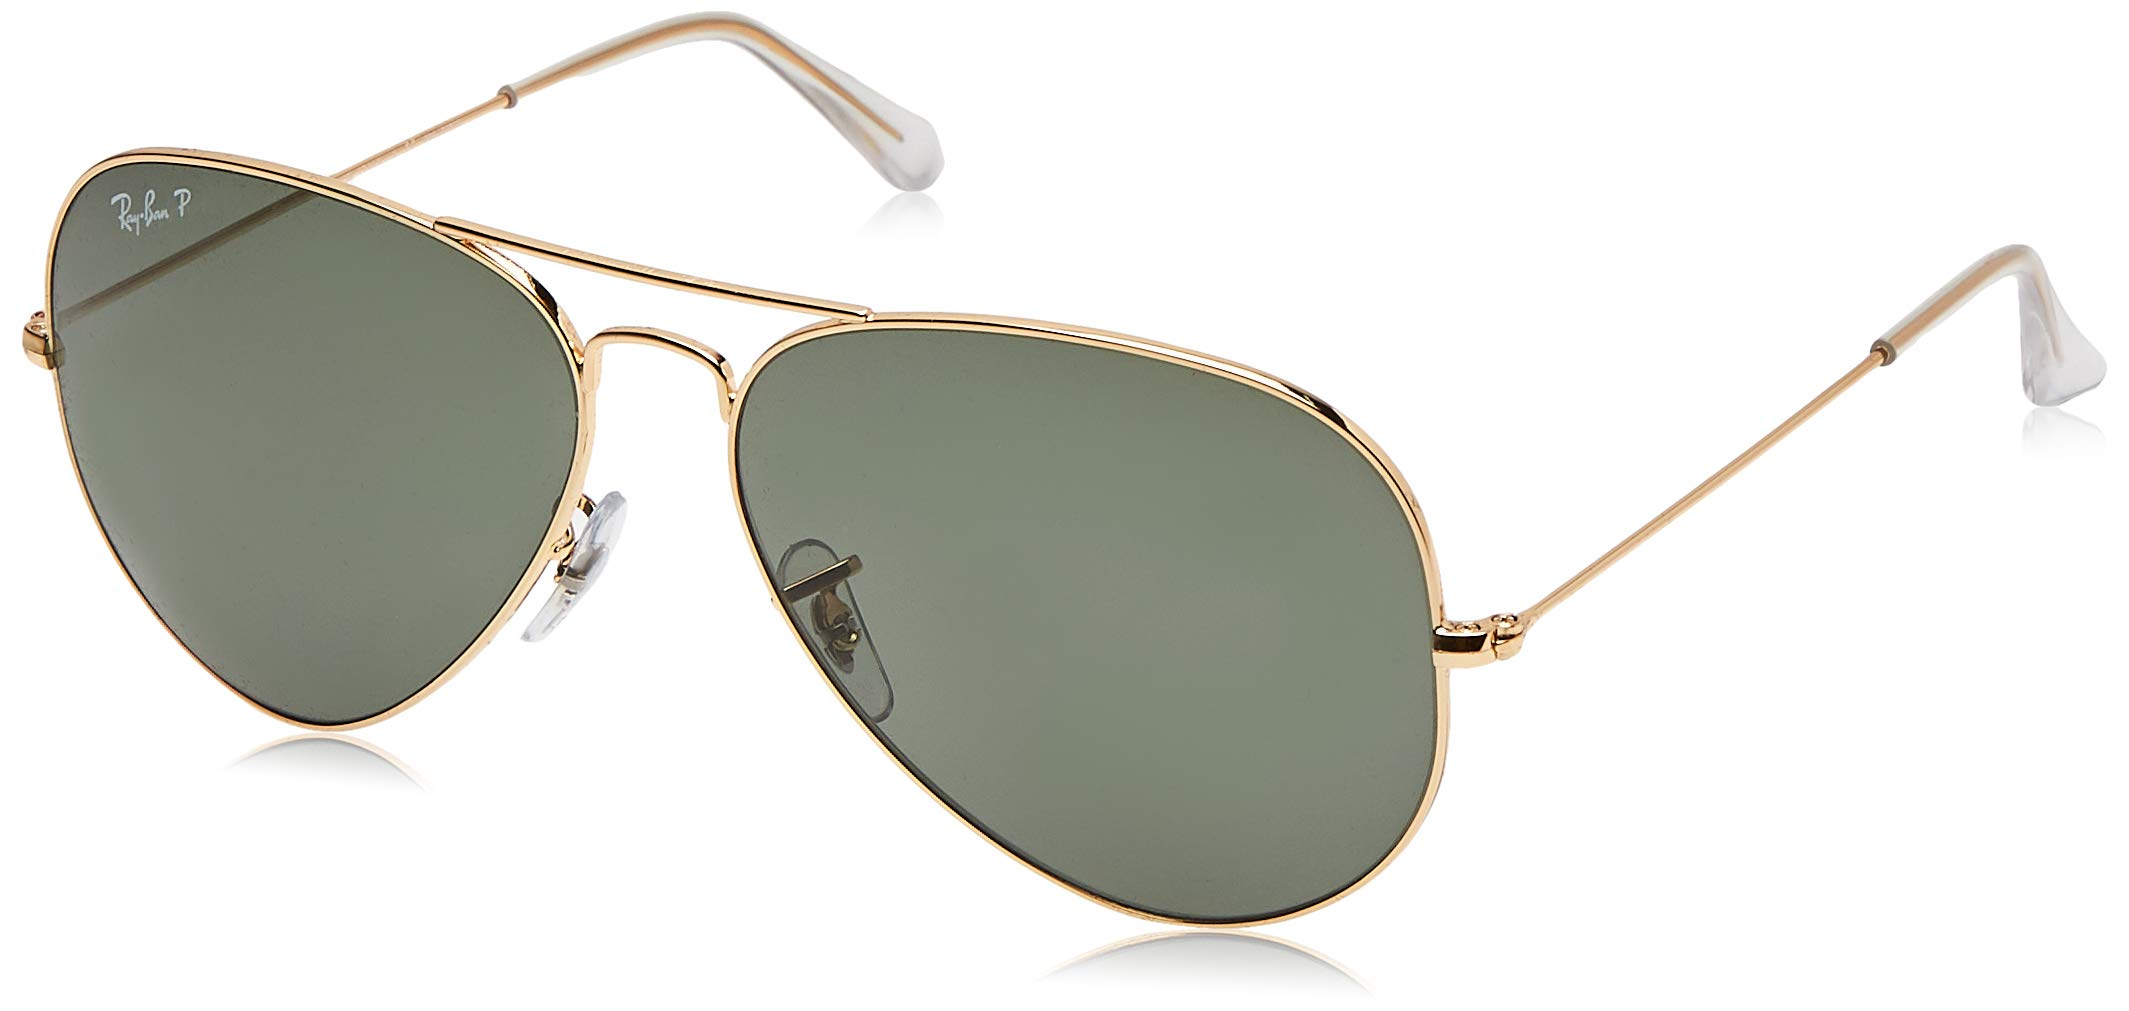 RAY-BAN RB3025 Aviator Large Metal Polarized Sunglasses, Gold/Polarized Green, 62 mm by Ray-Ban